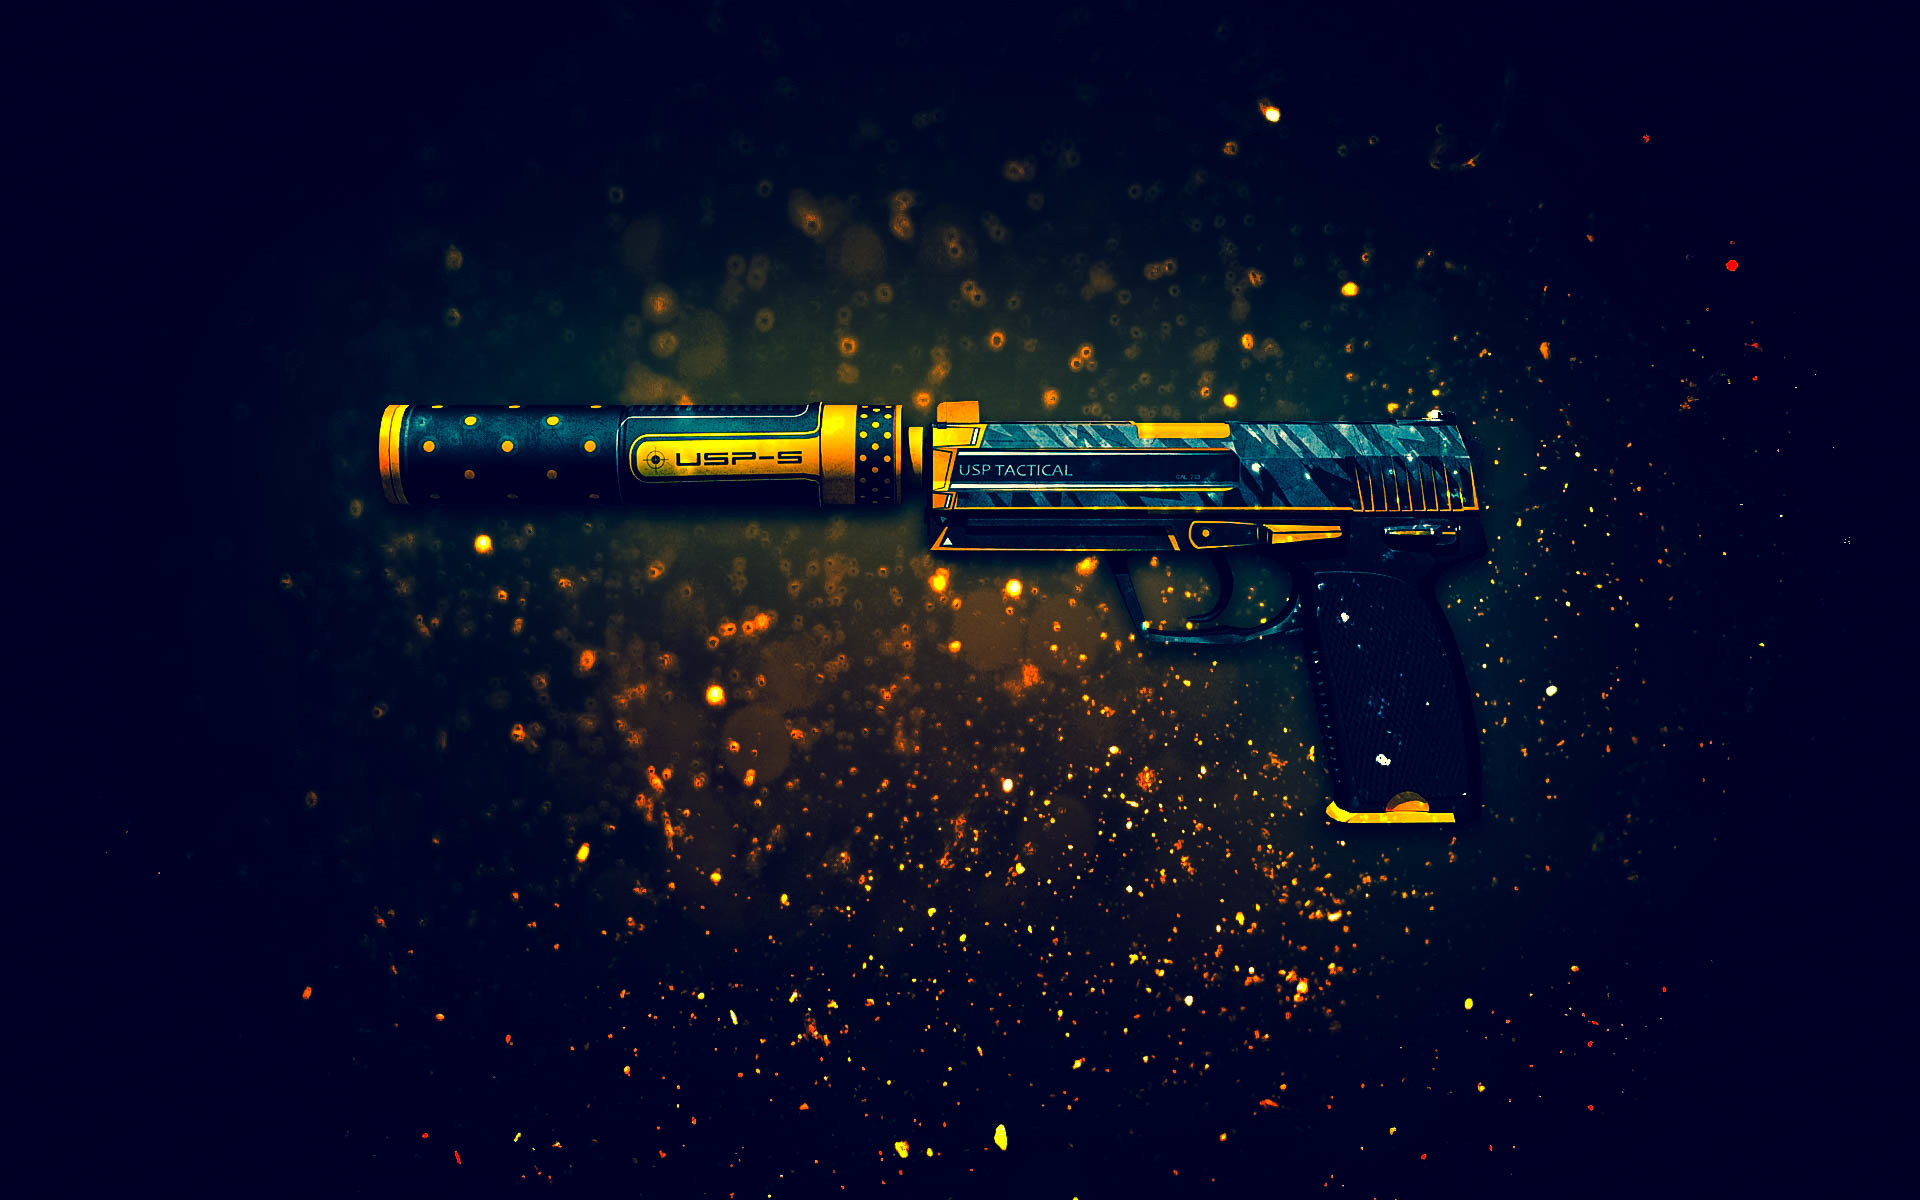 CS:GO Weapon Skin Wallpapers on Behance | My CSGO collection | Pinterest |  Weapons and Wallpaper